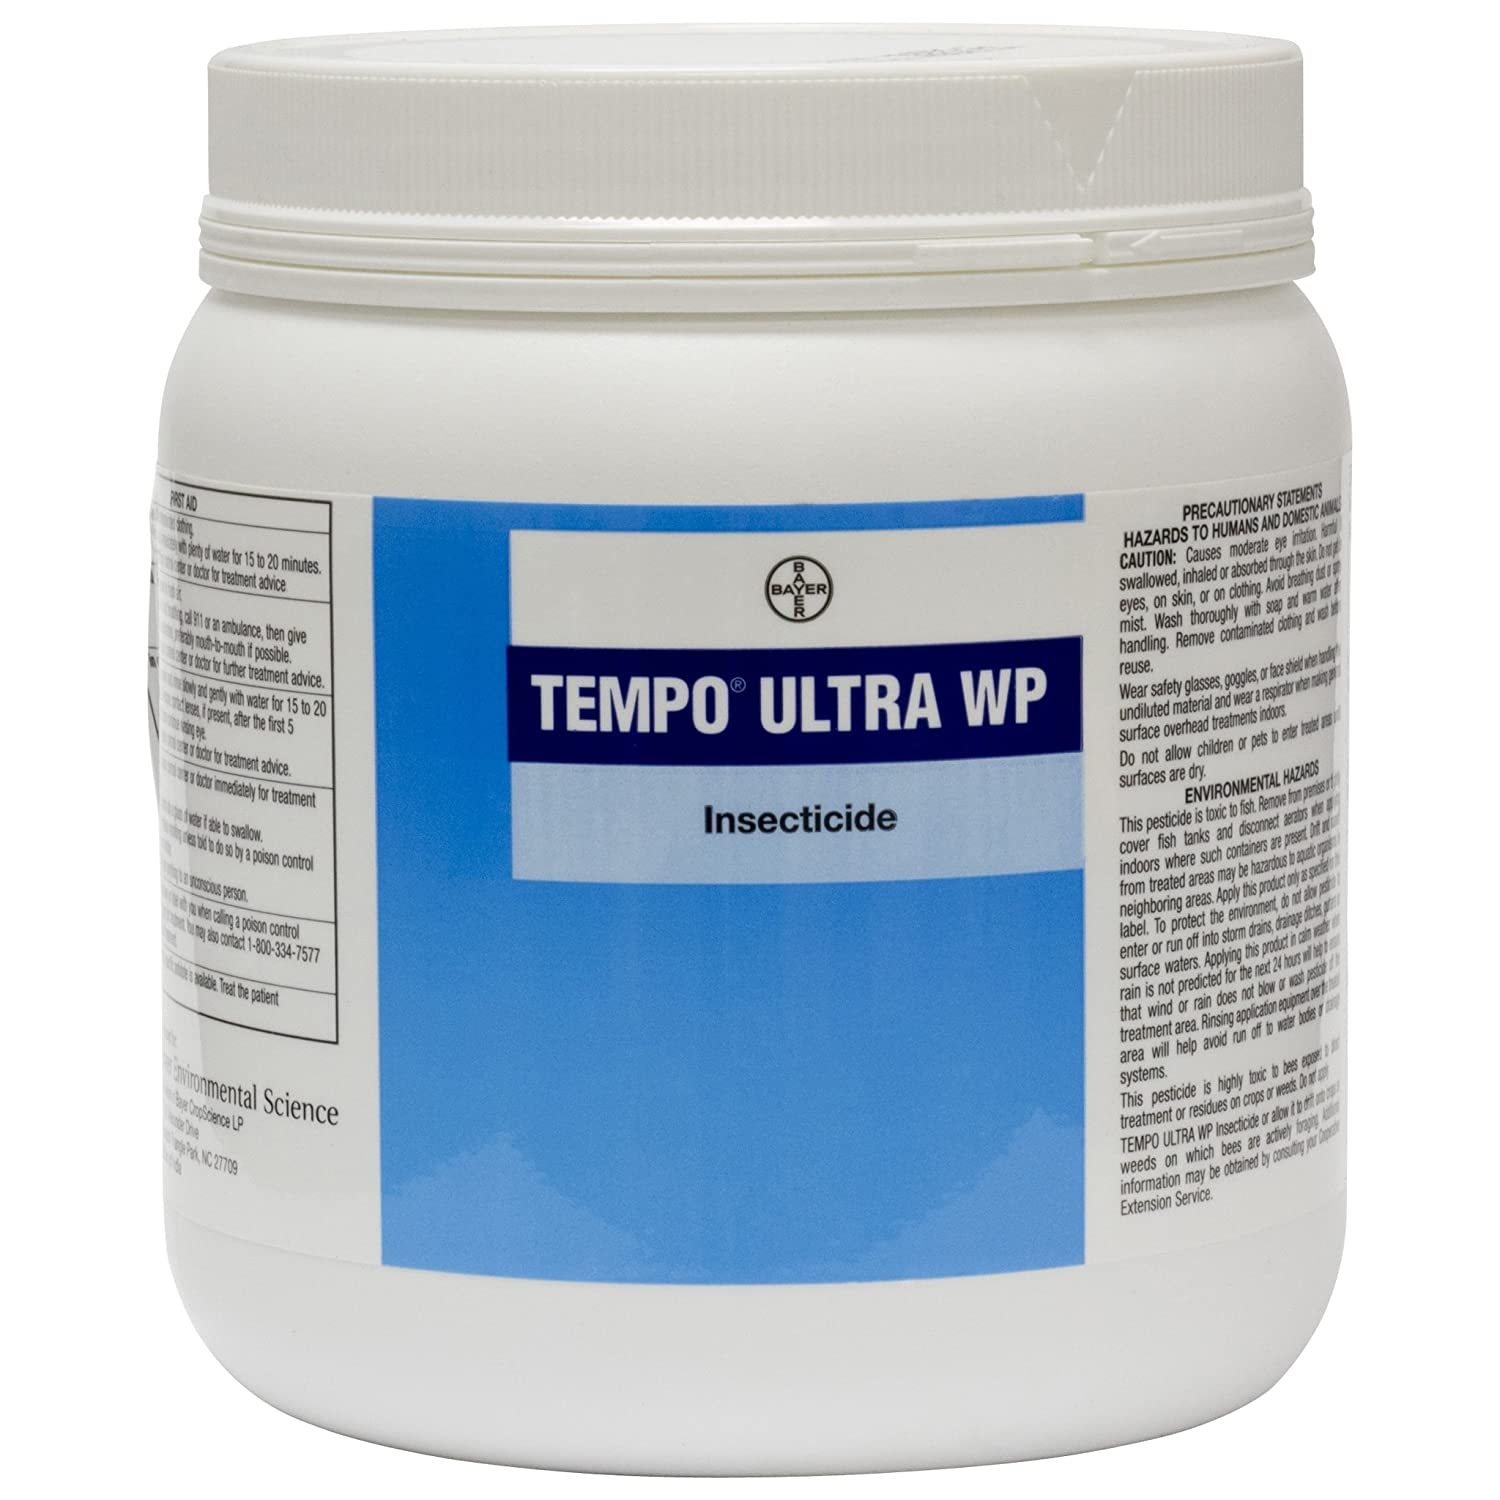 Tempo Ultra WP Contact lbs 国産品 Insecticide 税込 3